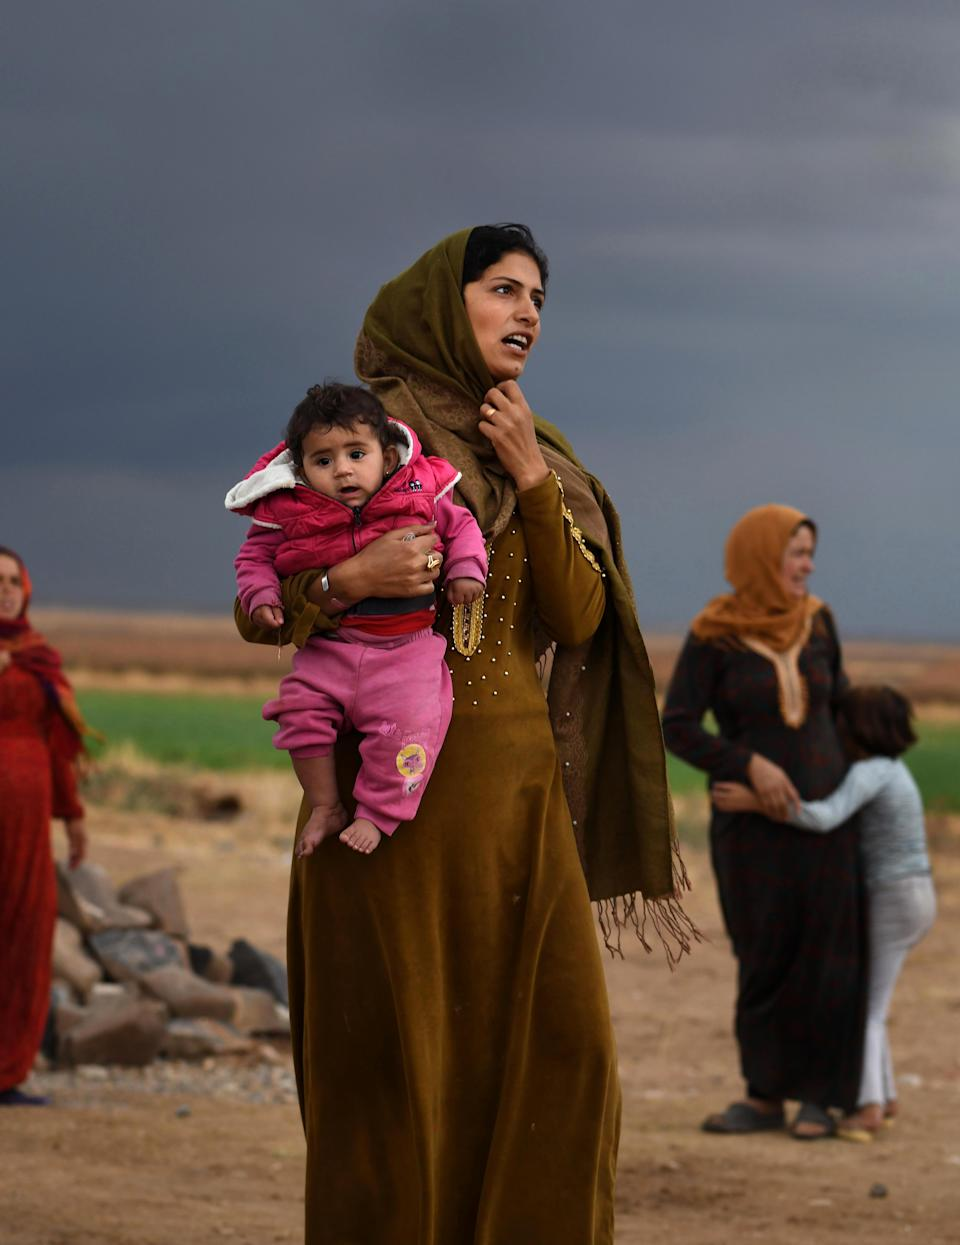 """October 29, 2019, Tel Tamir, Syria: Fida Aziz and her baby Maya fleeing the conflict in Syria as Turkish and Turkish-backed forces move to enforce a """"safe zone"""" in territory along the border previously held by Kurdish militias. (Photo:  ©Carol Guzy/ZUMA Wire)"""